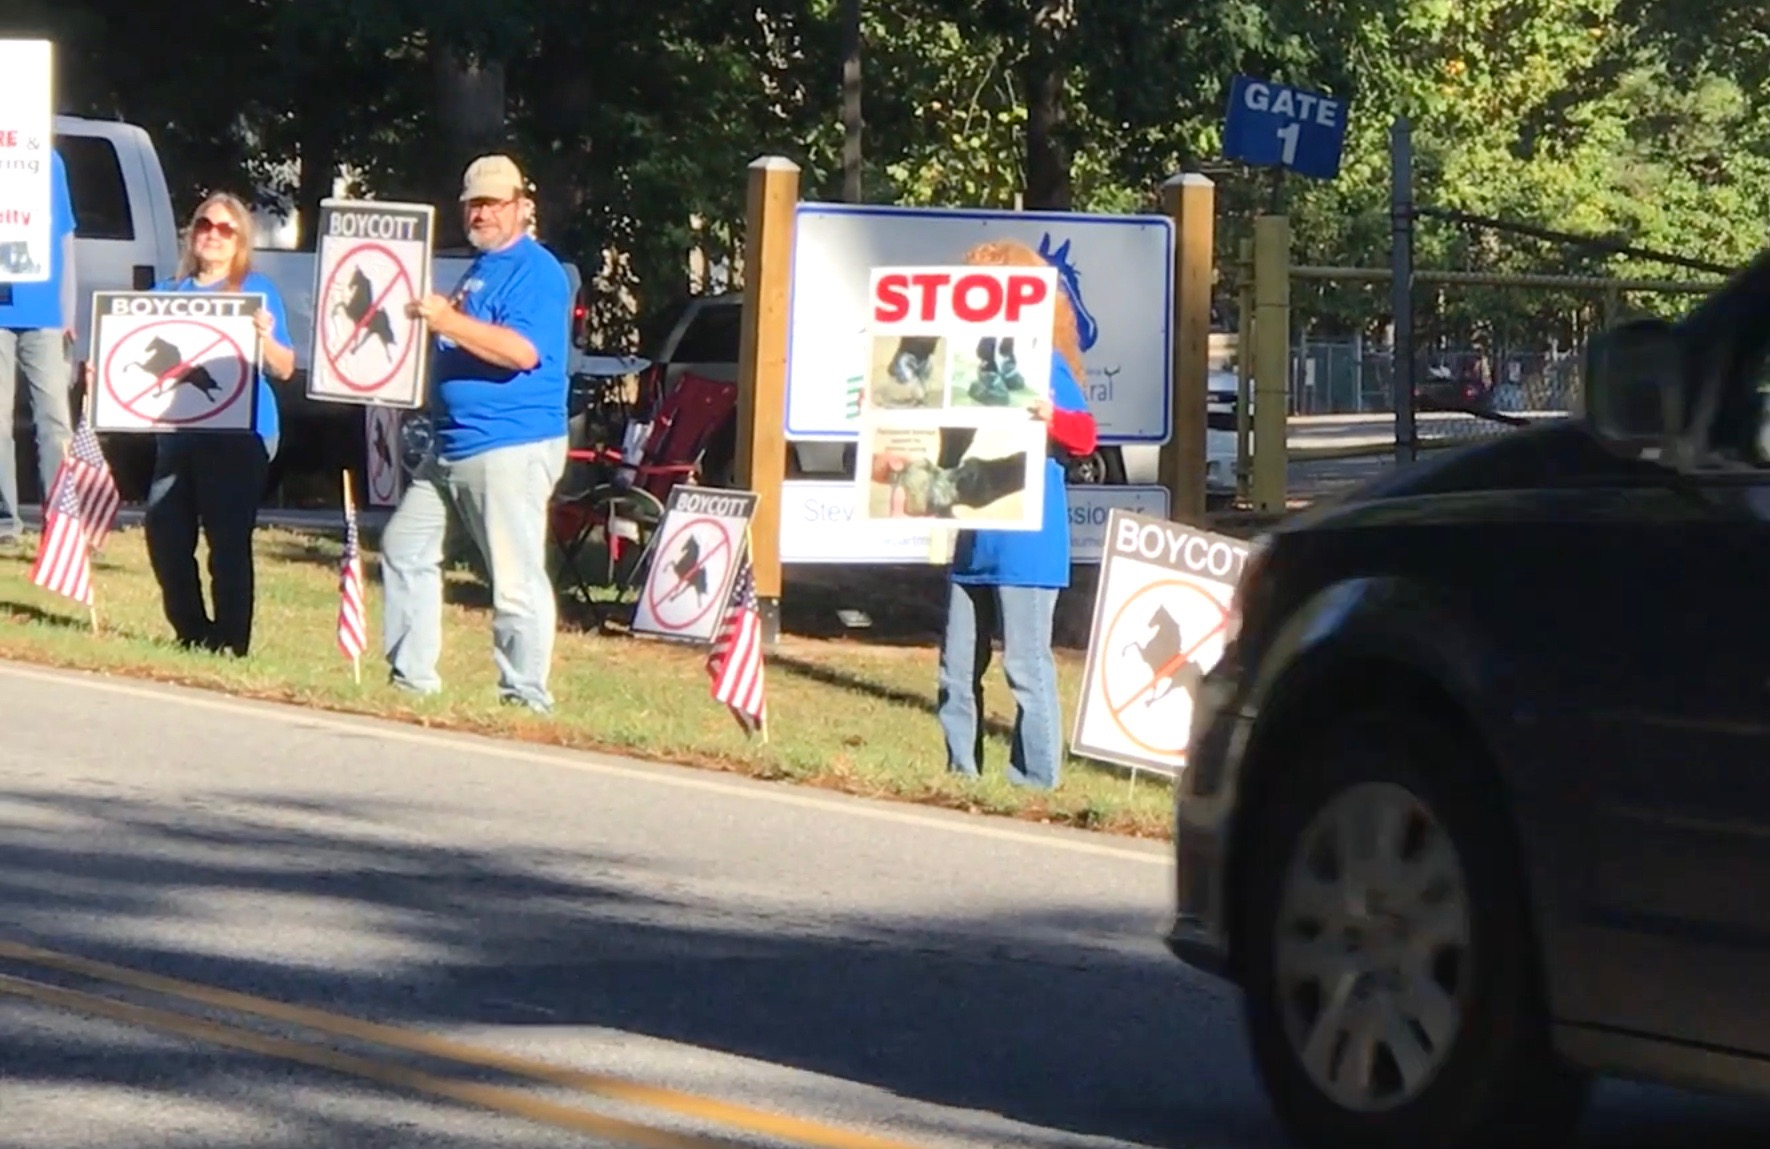 nc2016protest011006